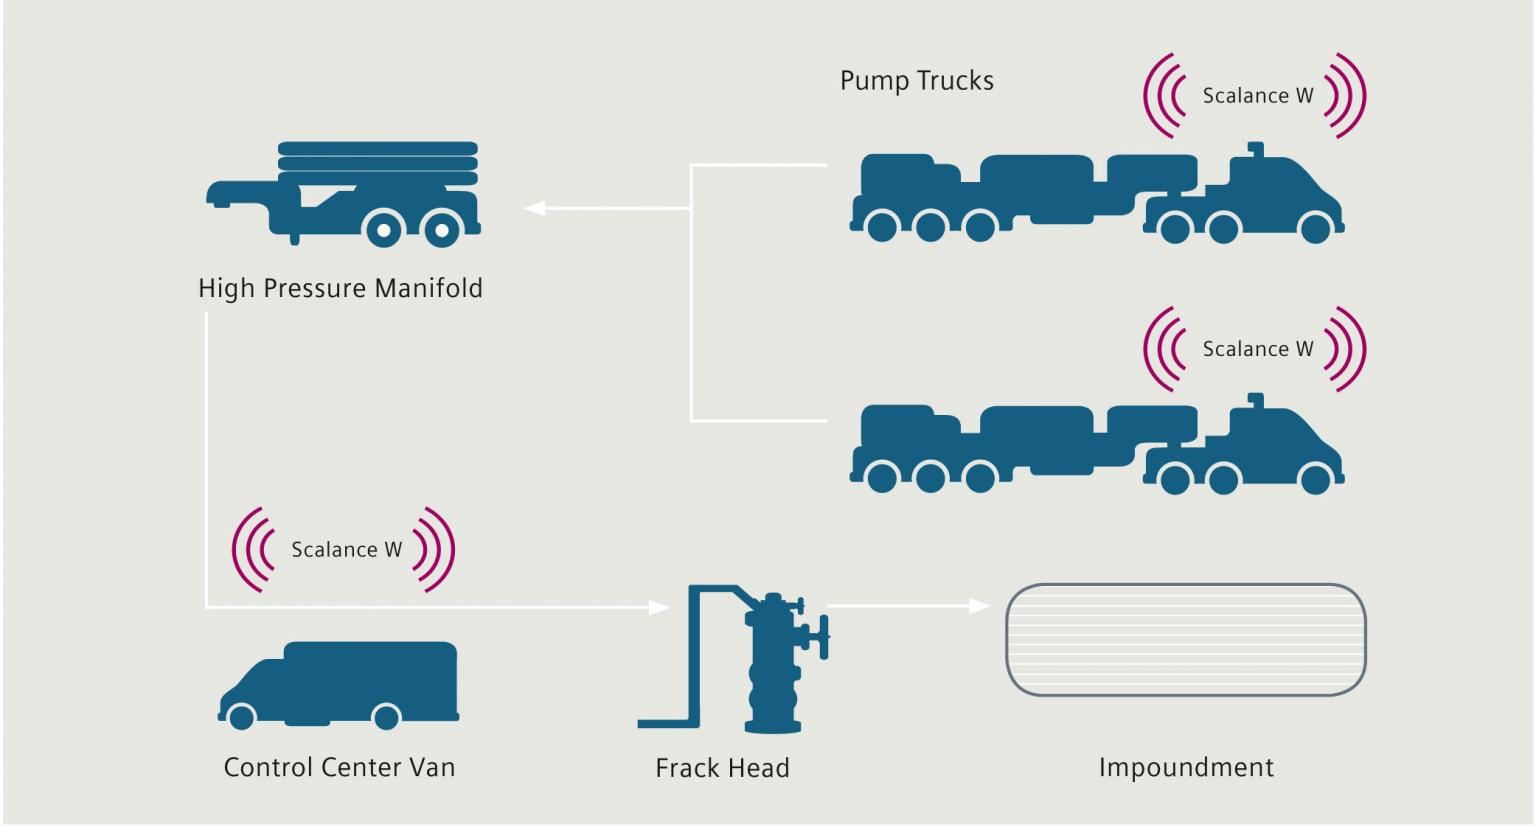 Communication for monitoring and controlling the pressure pumping units (frack trucks)